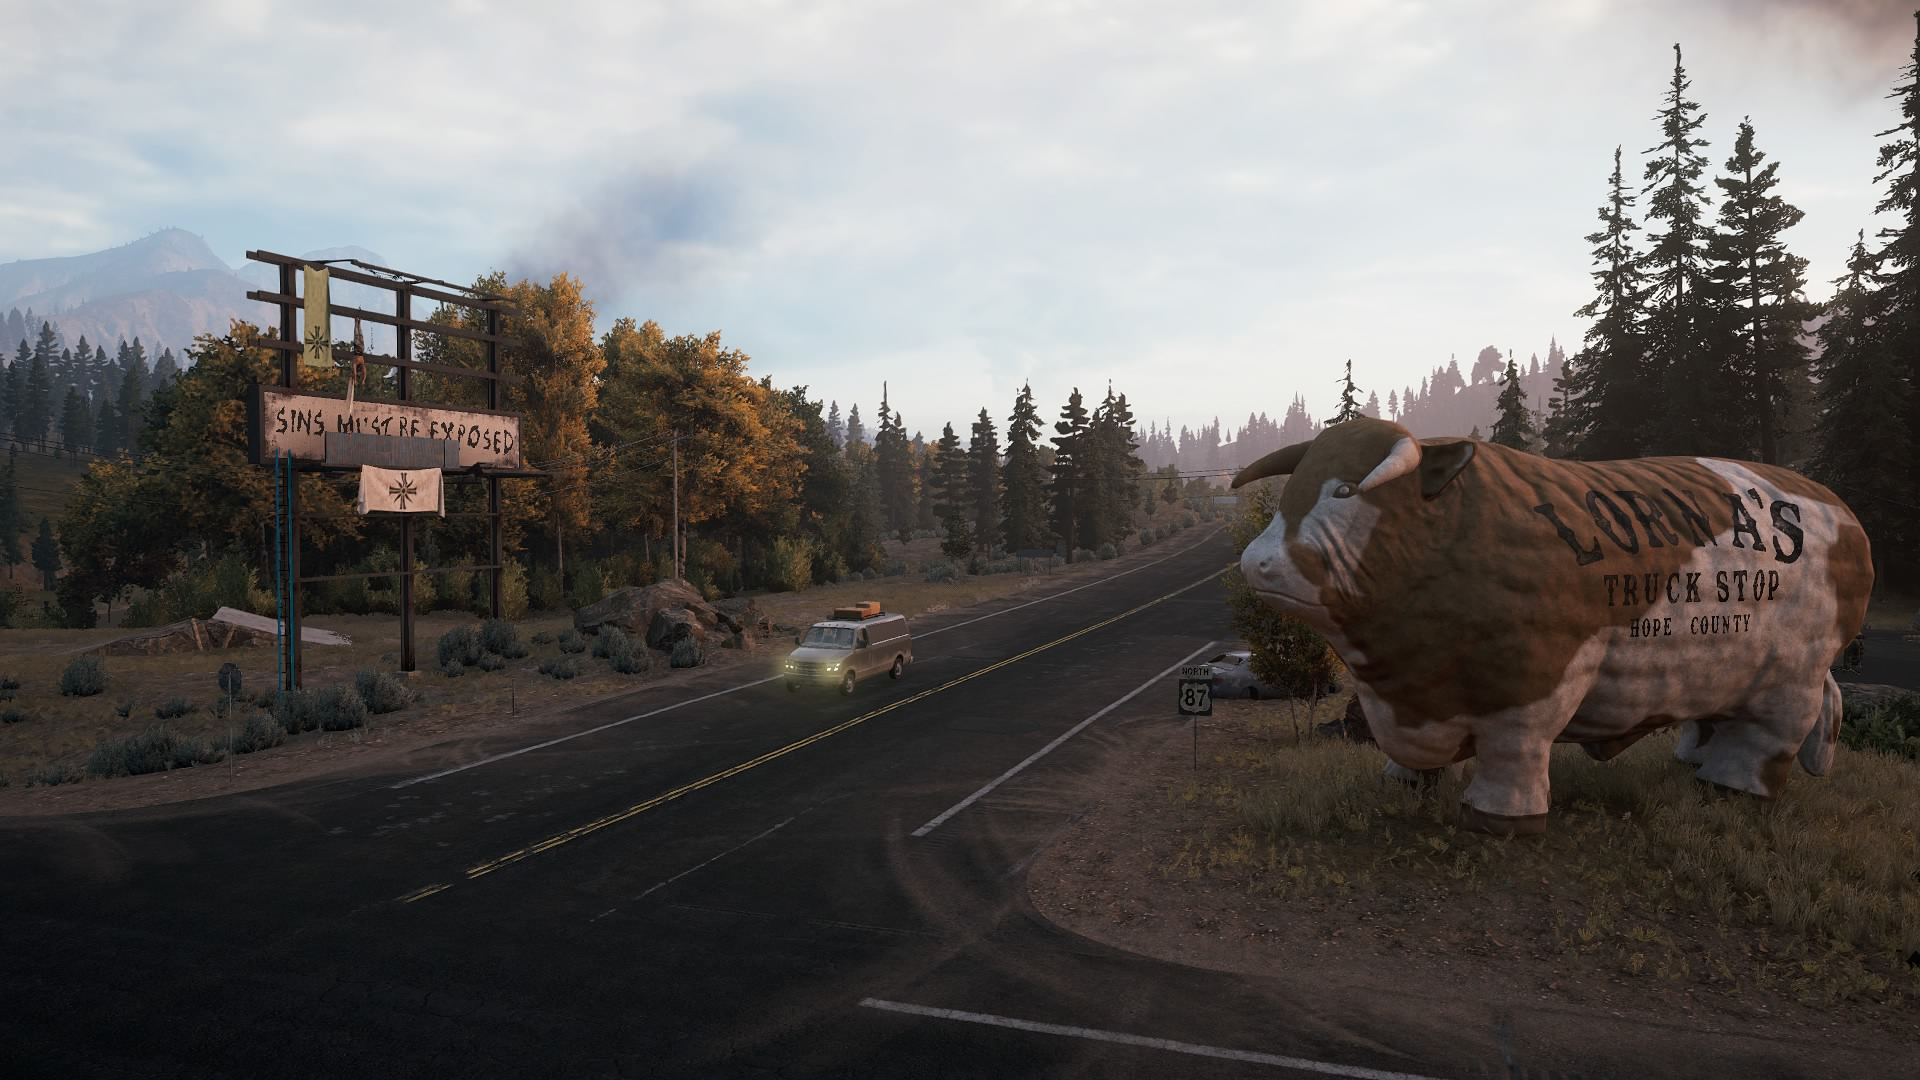 Far Cry 5 Johns Region Pictures To Pin On Pinterest: Far Cry 5 Henbane River Walkthrough Guide